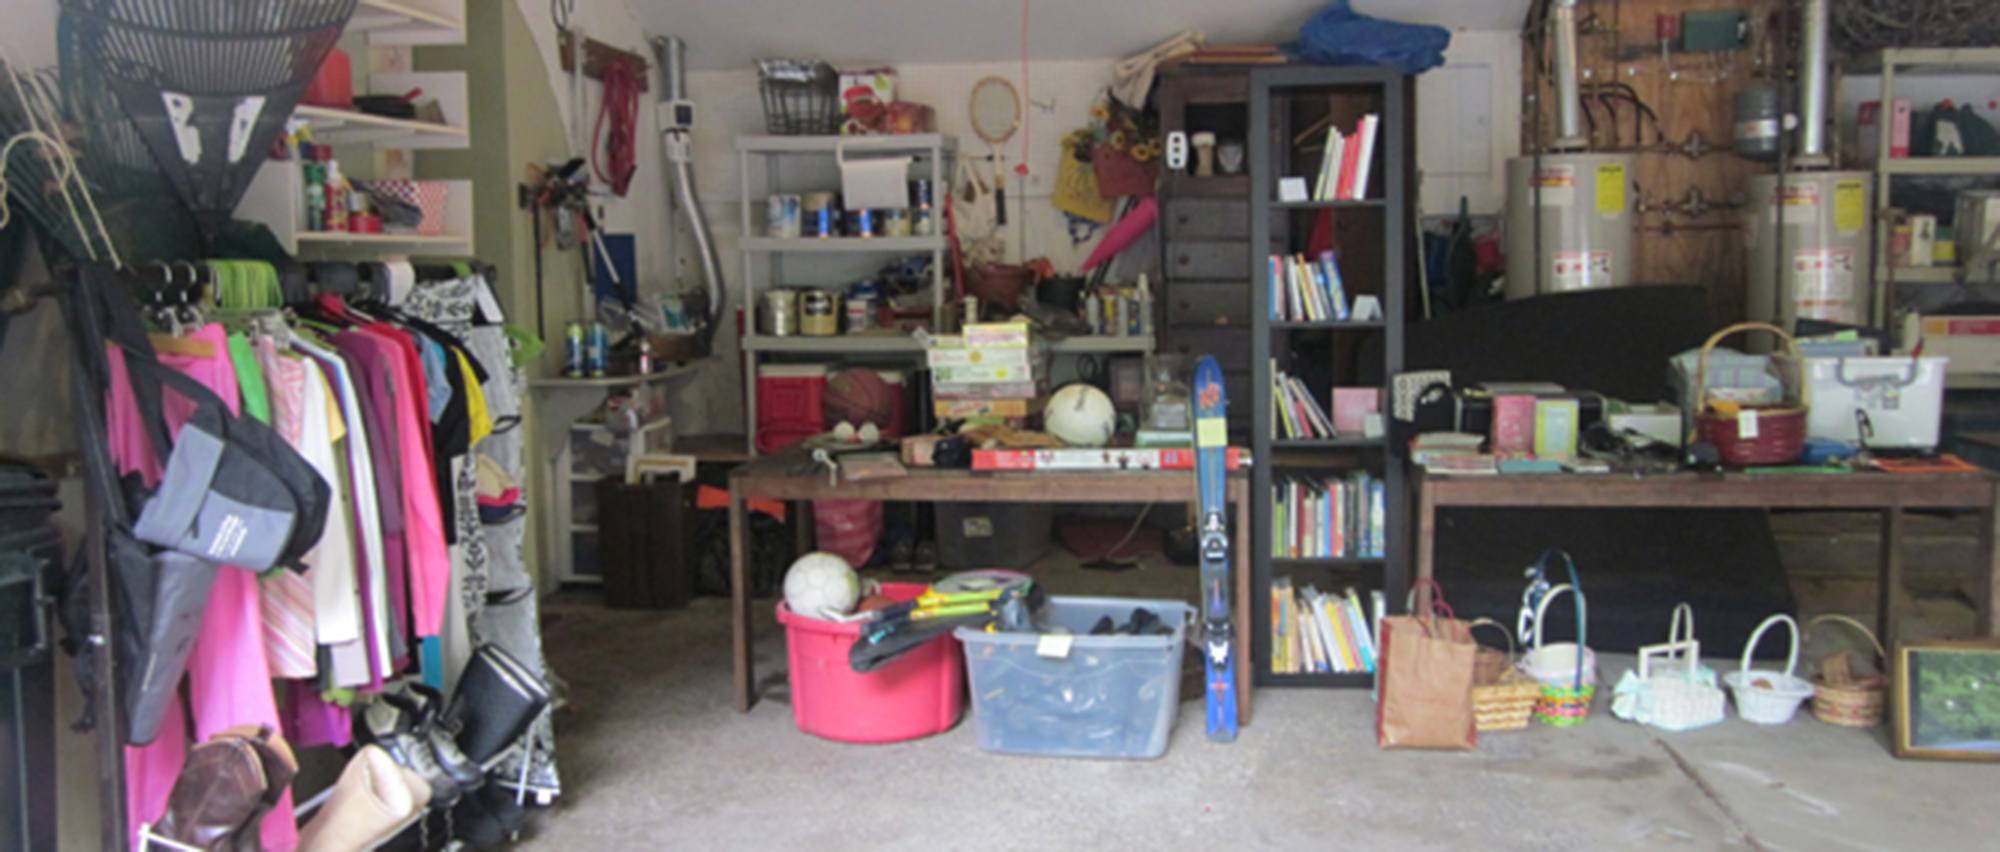 Downsize Yourself! Garage Sale Tips thumbnail